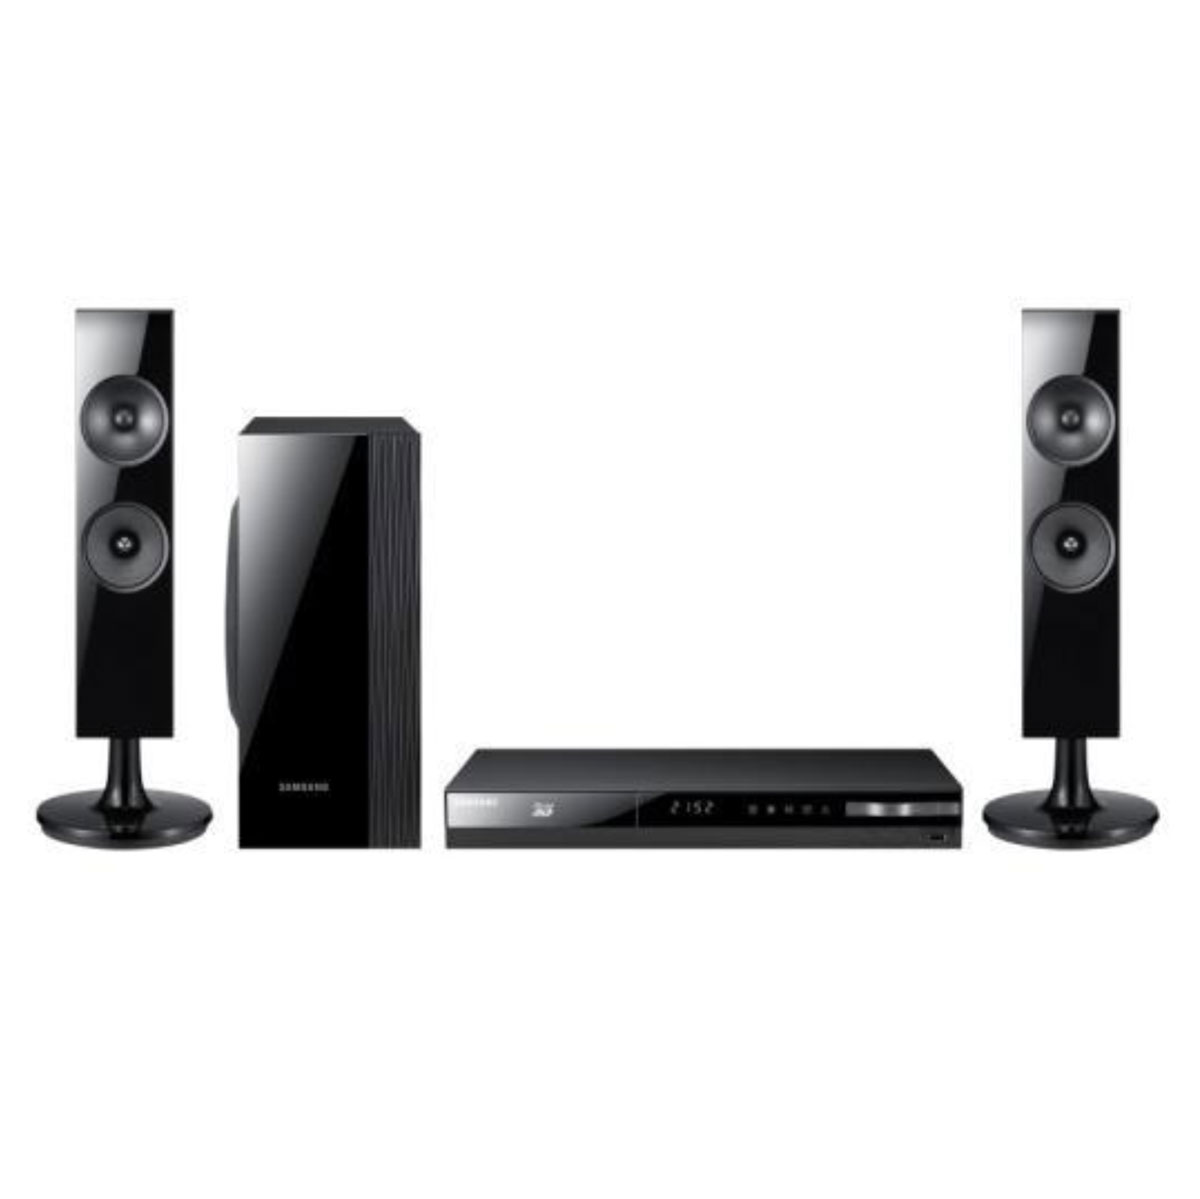 Samsung ht es4200 ensemble home cin ma samsung sur ldlc - Ensemble tv home cinema ...